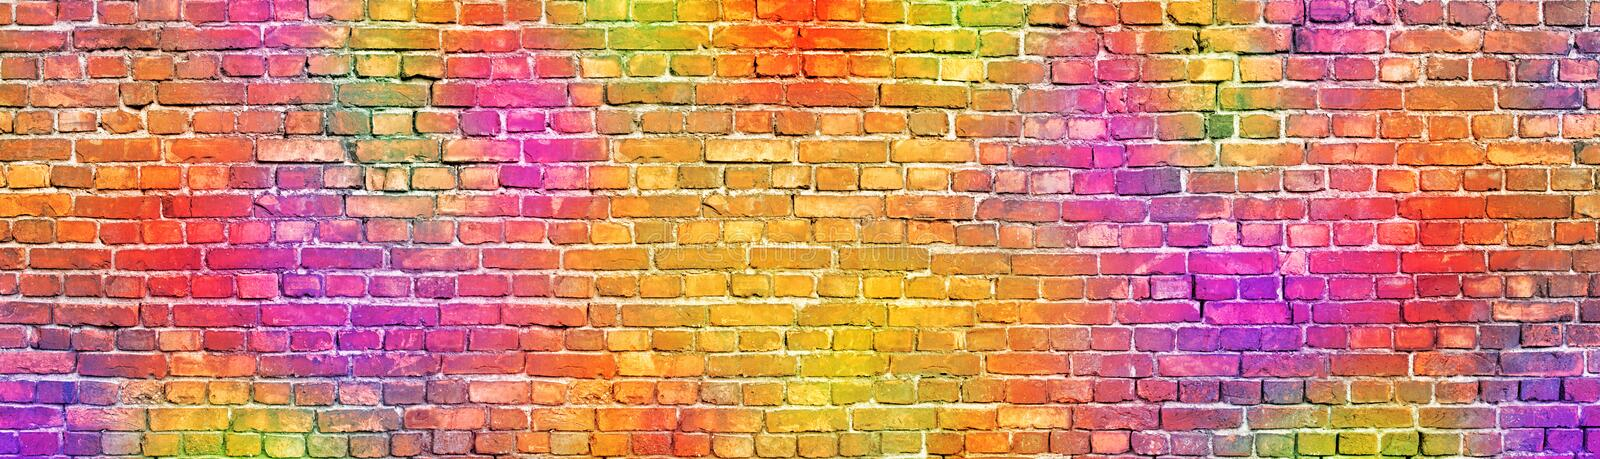 Painted brick wall, abstract background a diverse color stock image